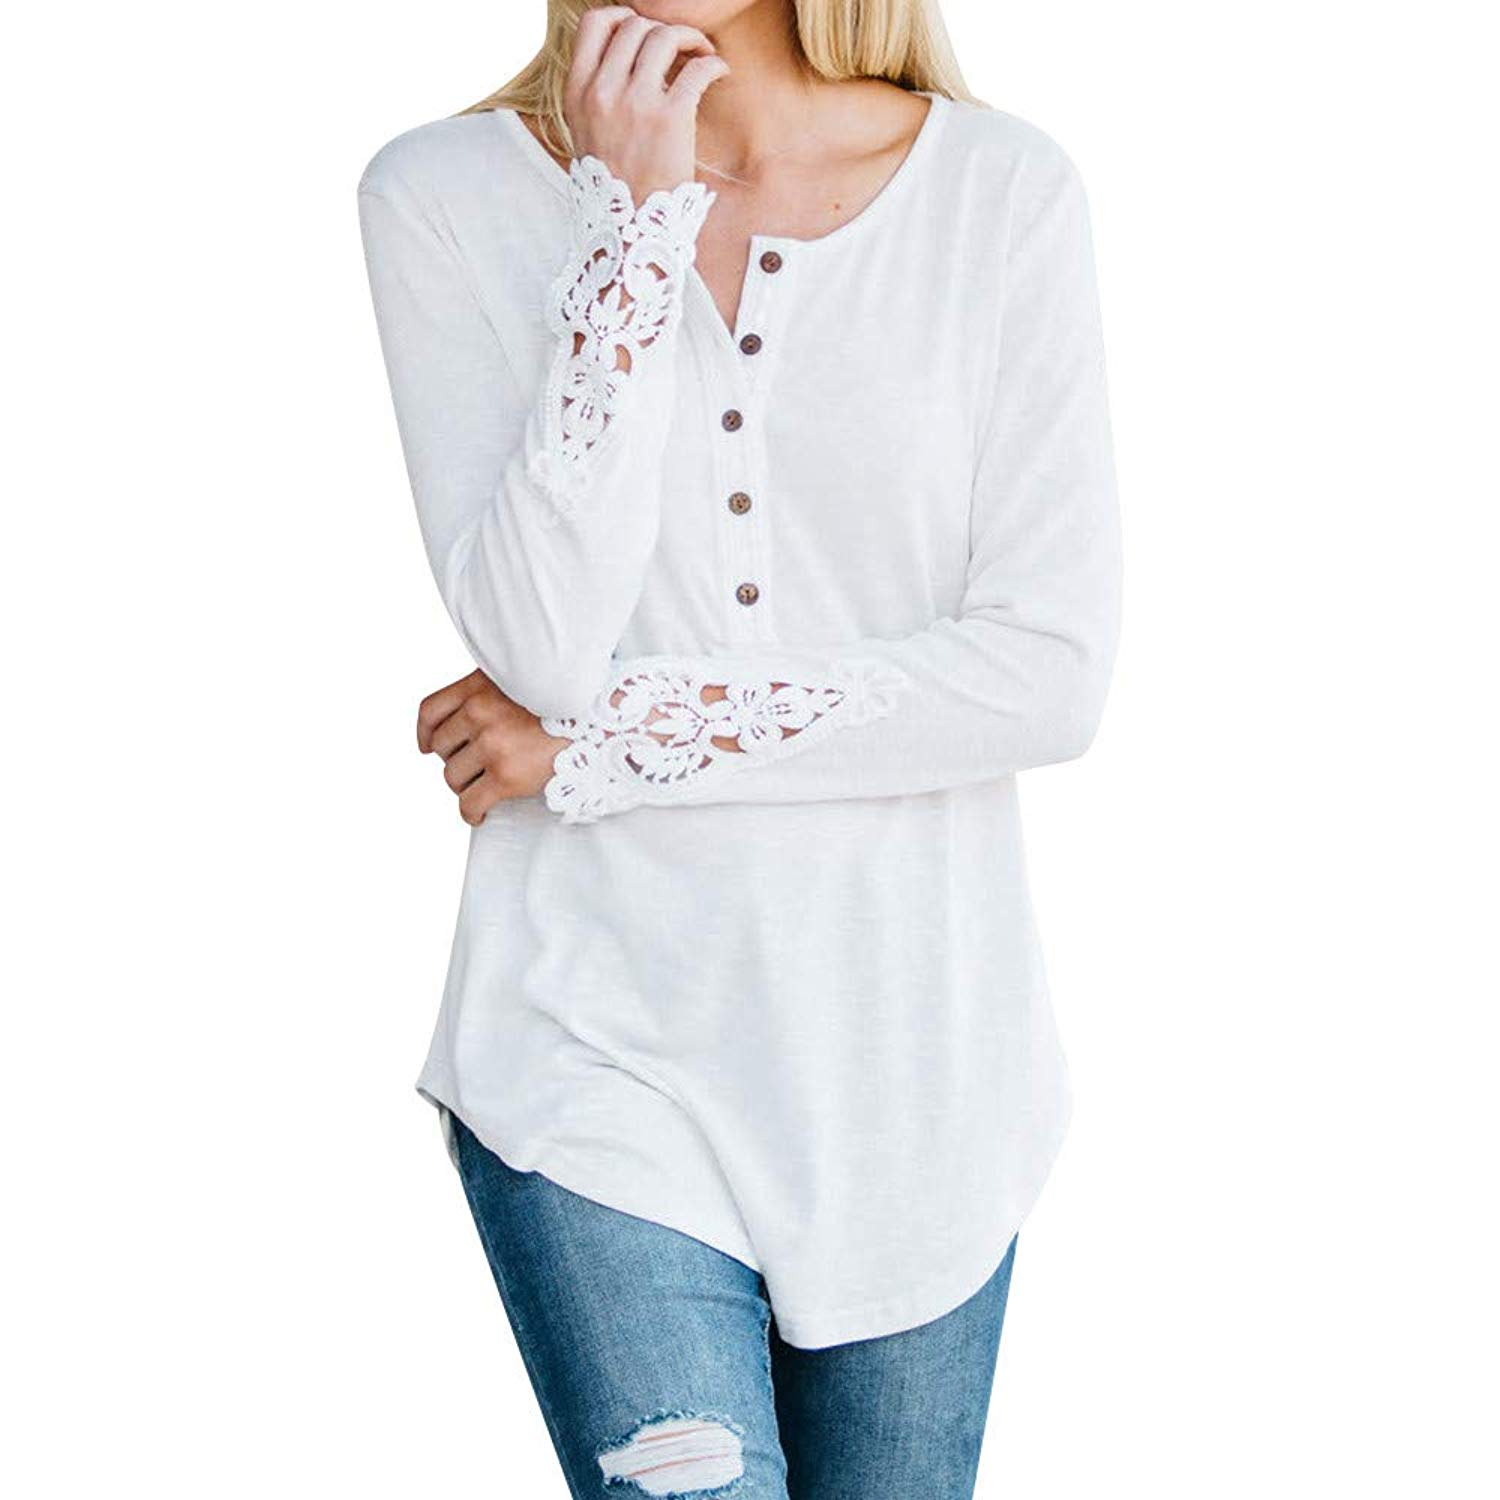 Women Tops, Owill Lace Patchwork Long Sleeve Floral Bottom Casual Blouse T-Shirt Top